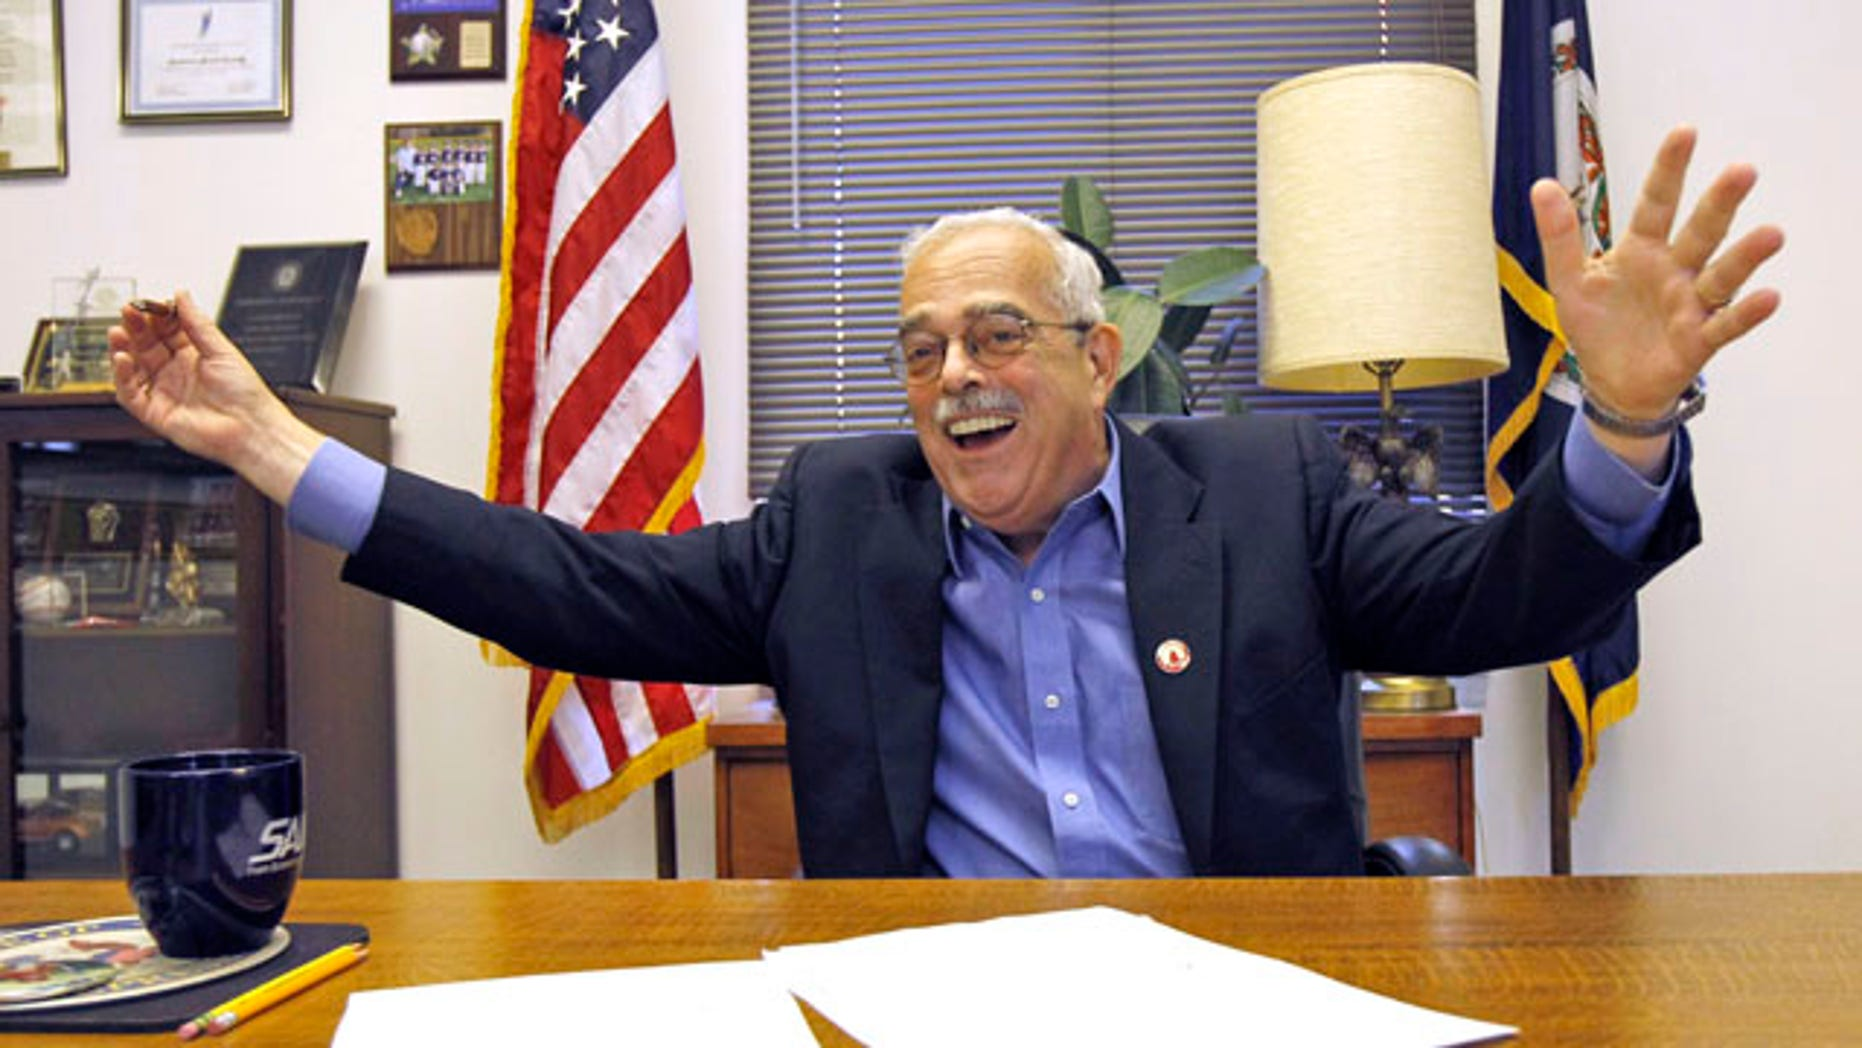 Nov. 9: Rep. Gerry Connolly, D-Va., talks about winning his undecided re-election, at his office in Annandale, Va. A spokesman says he was released from a hospital the previous day after undergoing treatment for a blood clot.